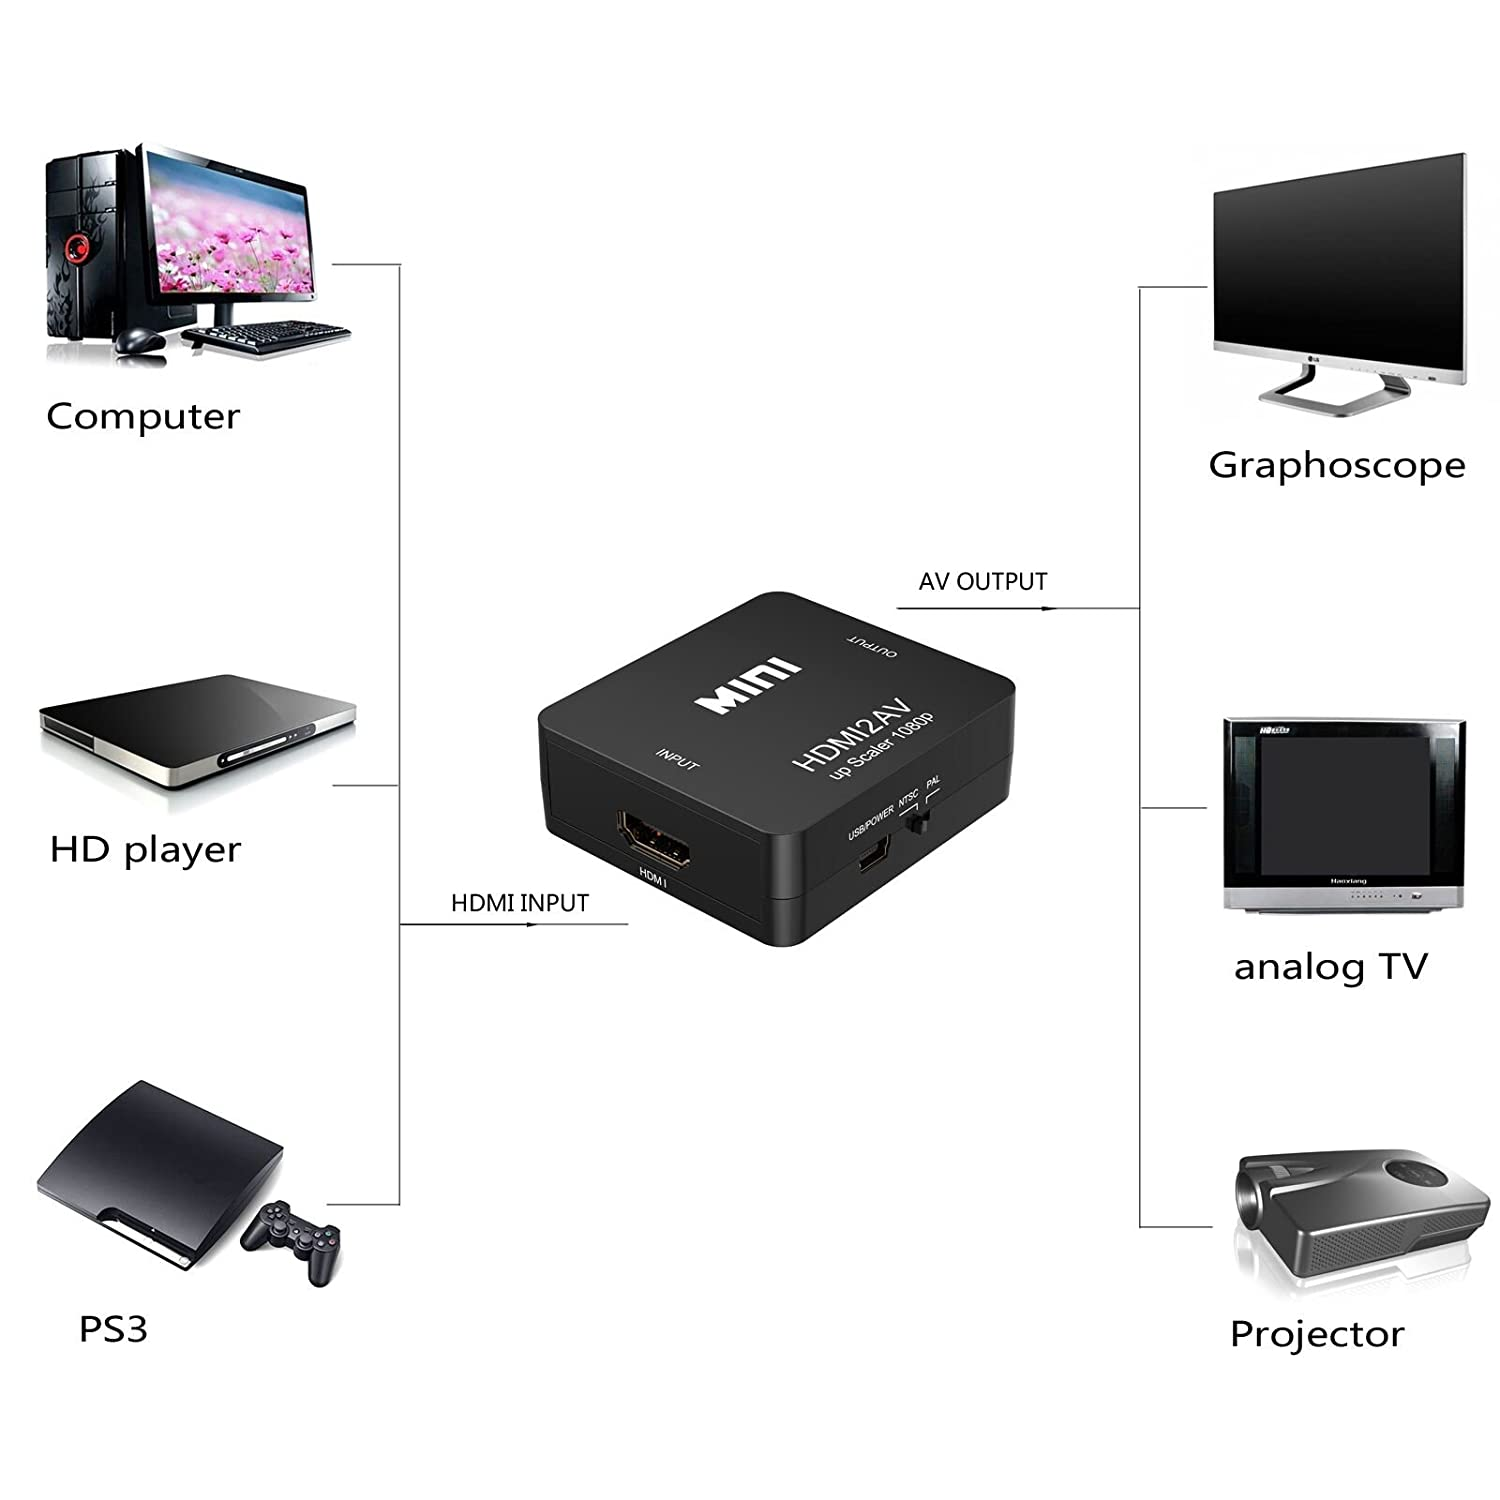 HDMI to RCA,ABLEWE HDMI to AV Converter Adapter 1080P CVBs Composite Video Audio Converter Adapter Supports PAL//NTSC with USB Charge Cable